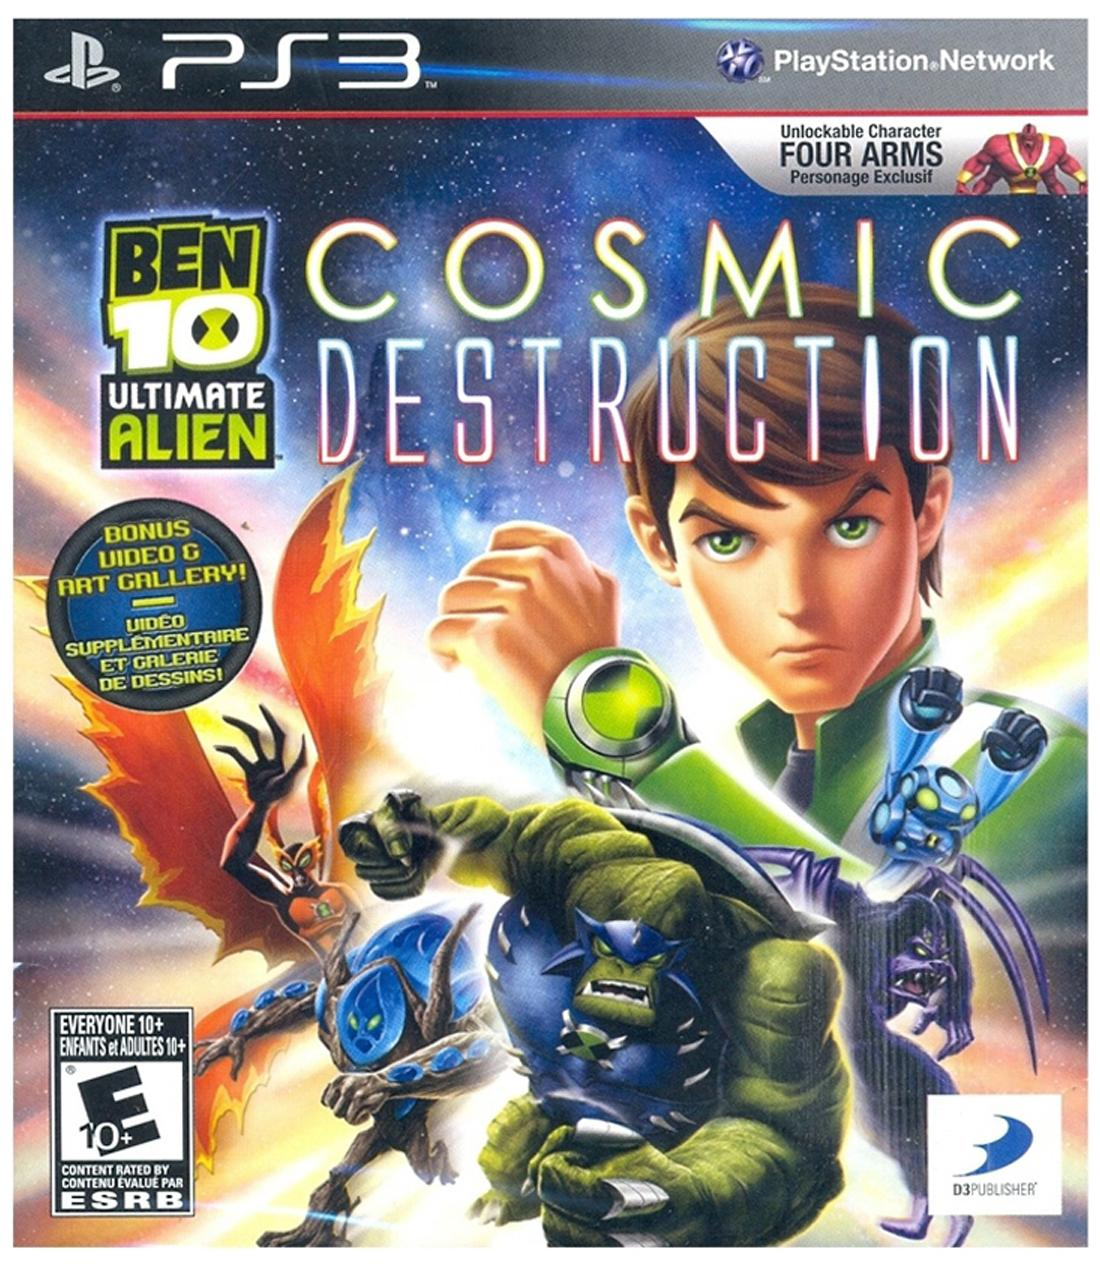 BEN 10 : Ultimate Alien Cosmic Destruction (For PlayStation 3)